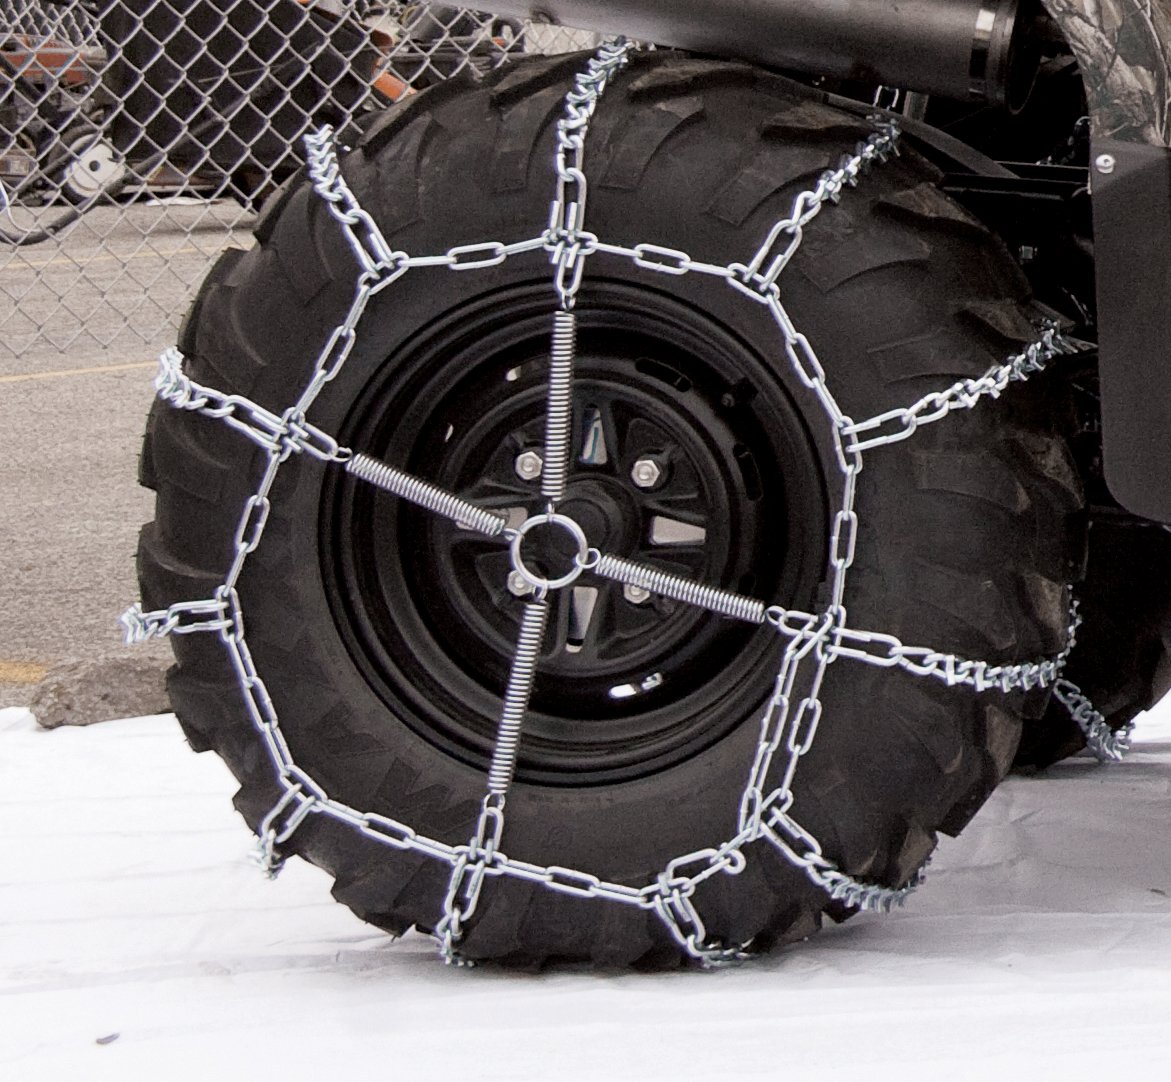 Tractor Chain Tensioner : B snow chains orangetractortalks everything